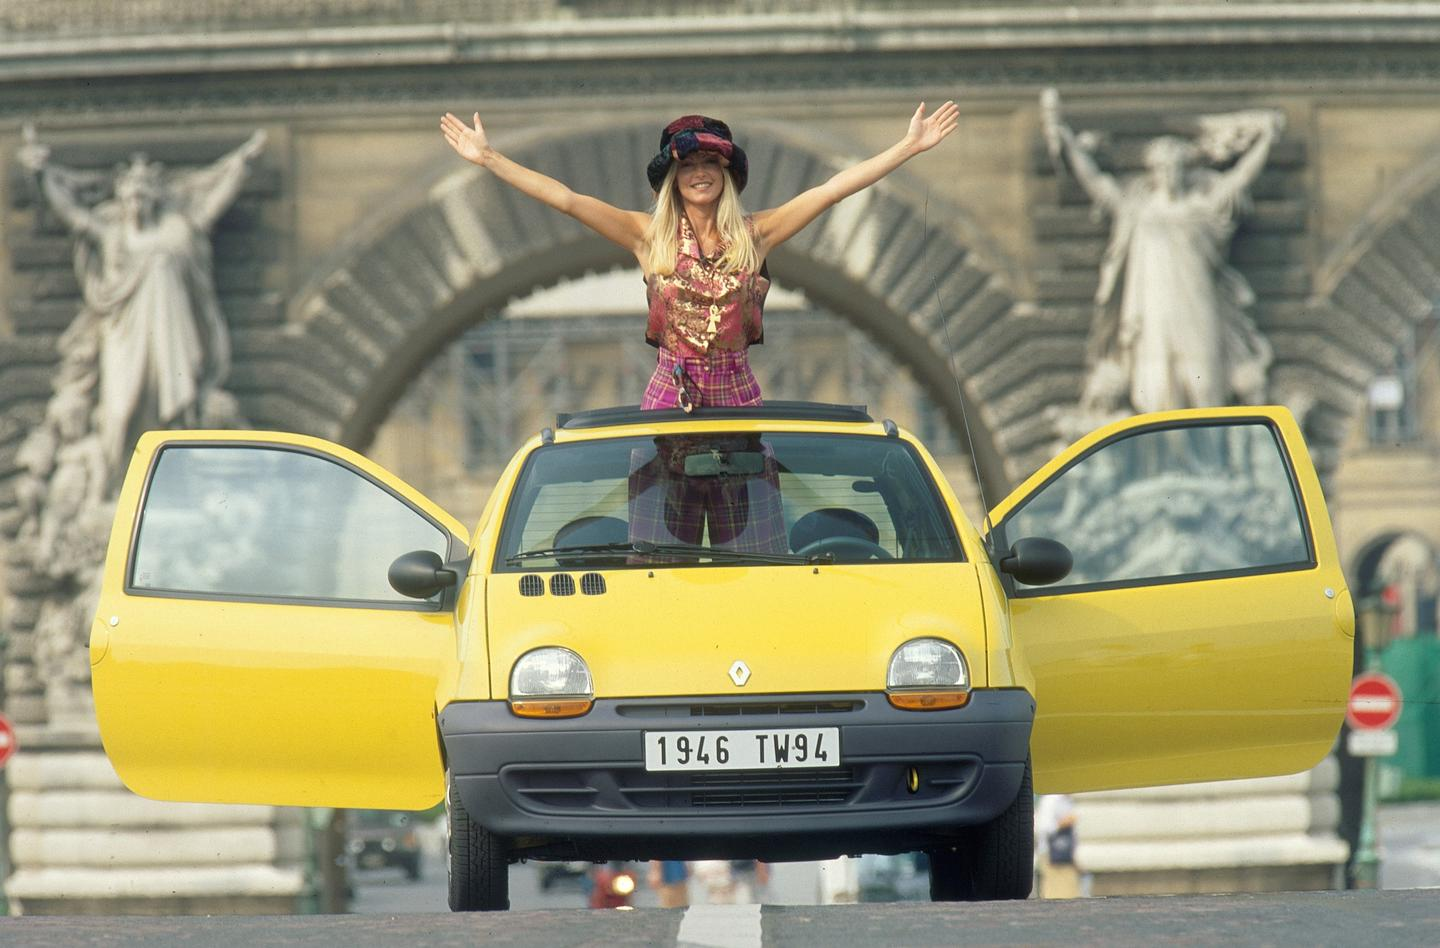 Renault is marking the launch of the new Twingo with a new advertising campaign